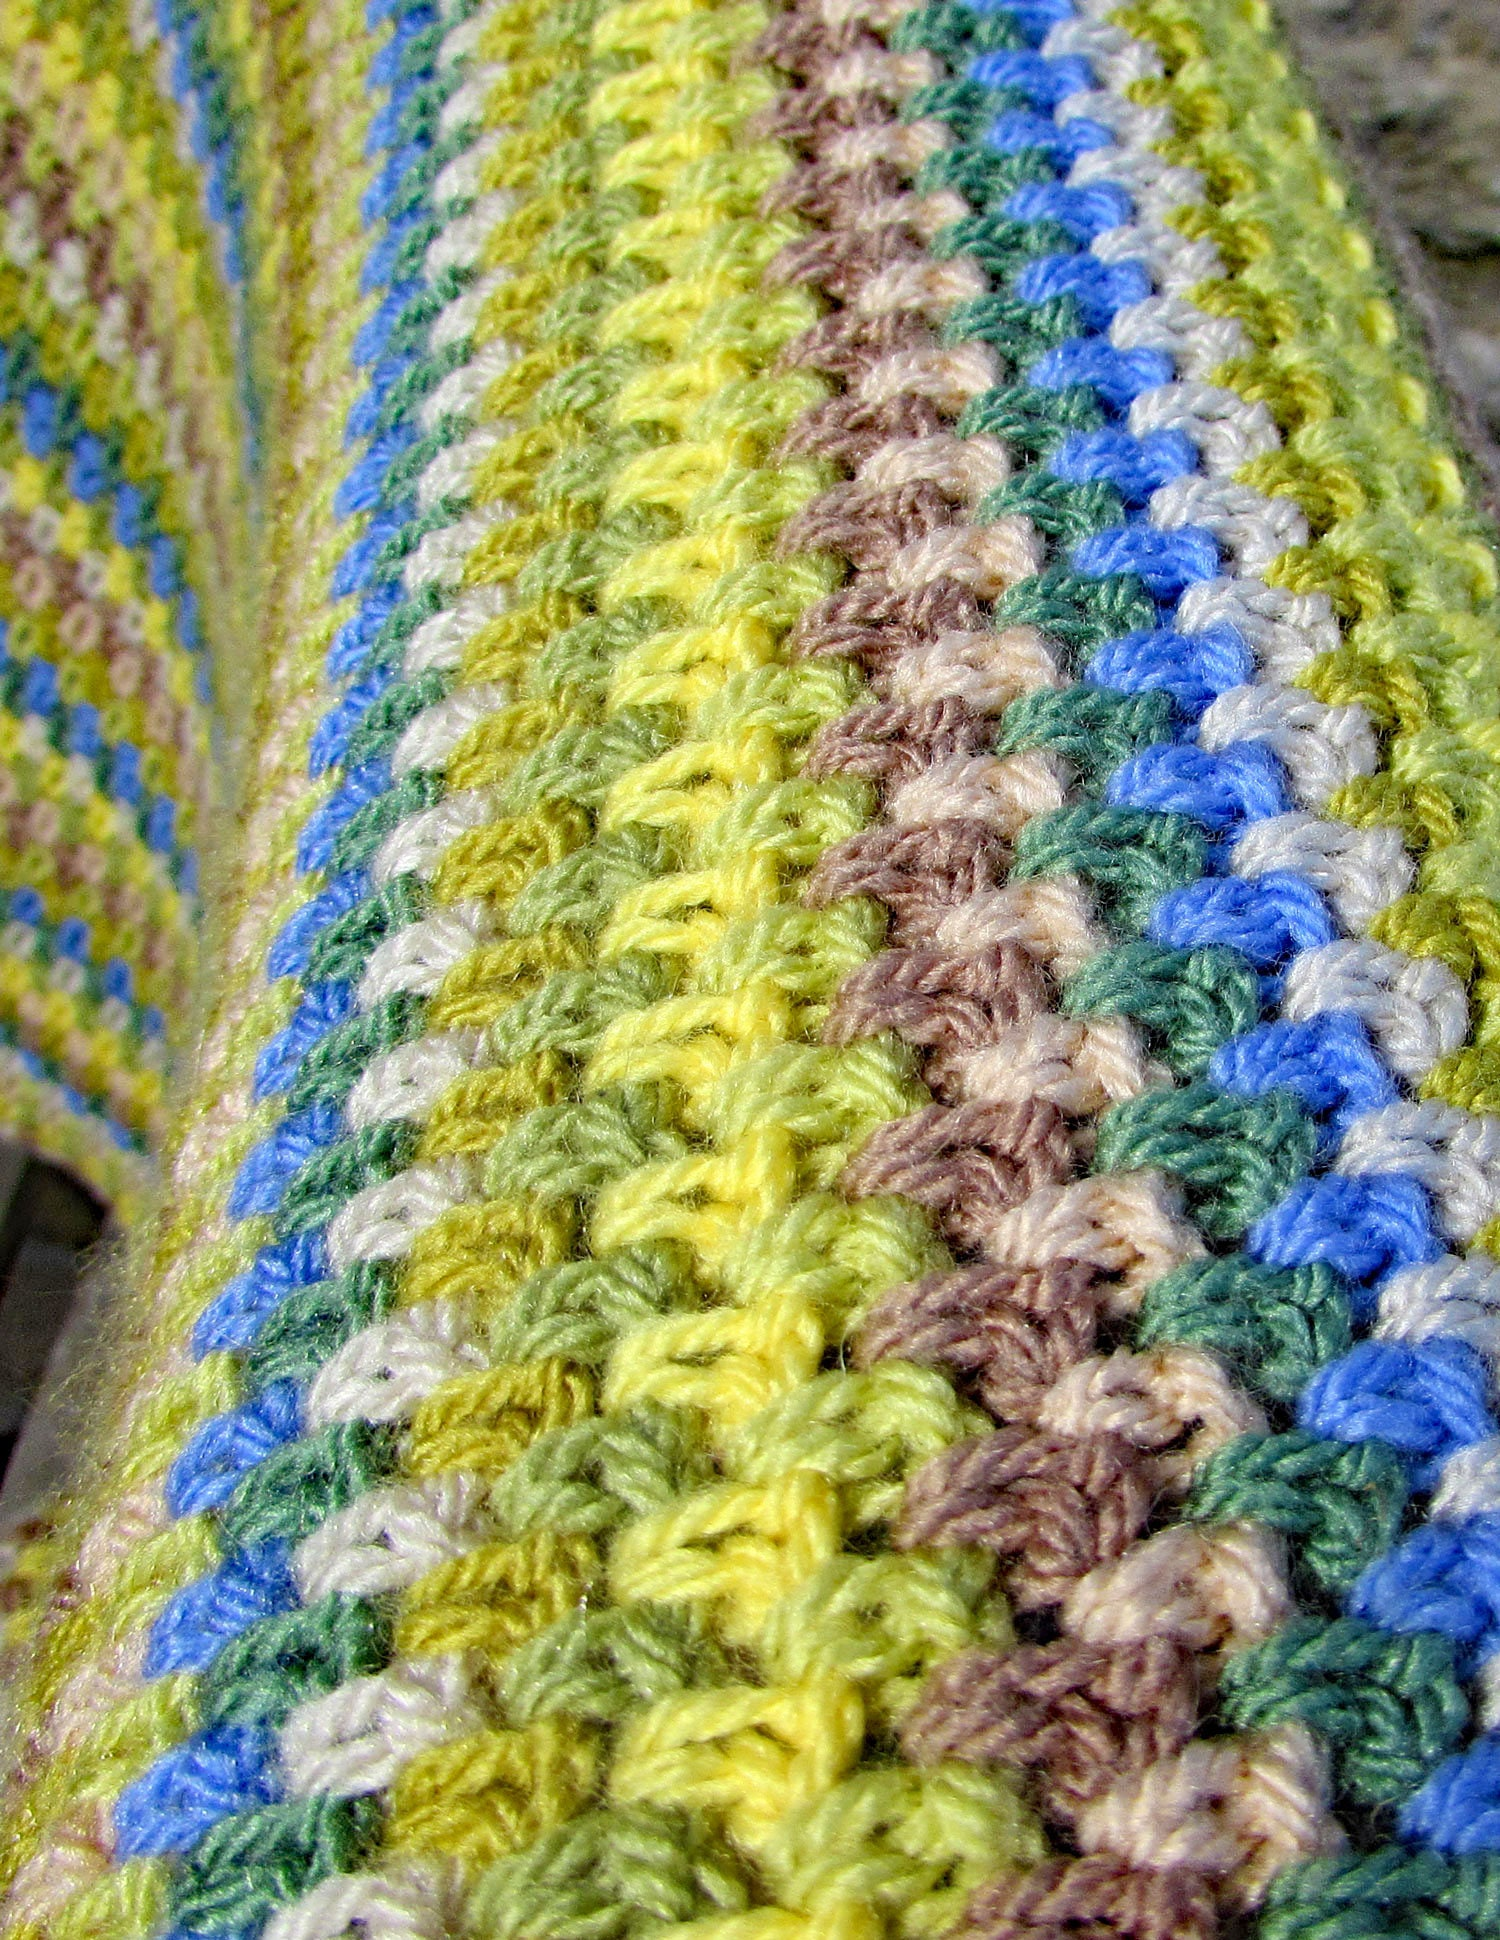 Crochet Blanket Pattern Lap Blanket Easy Crochet Pattern